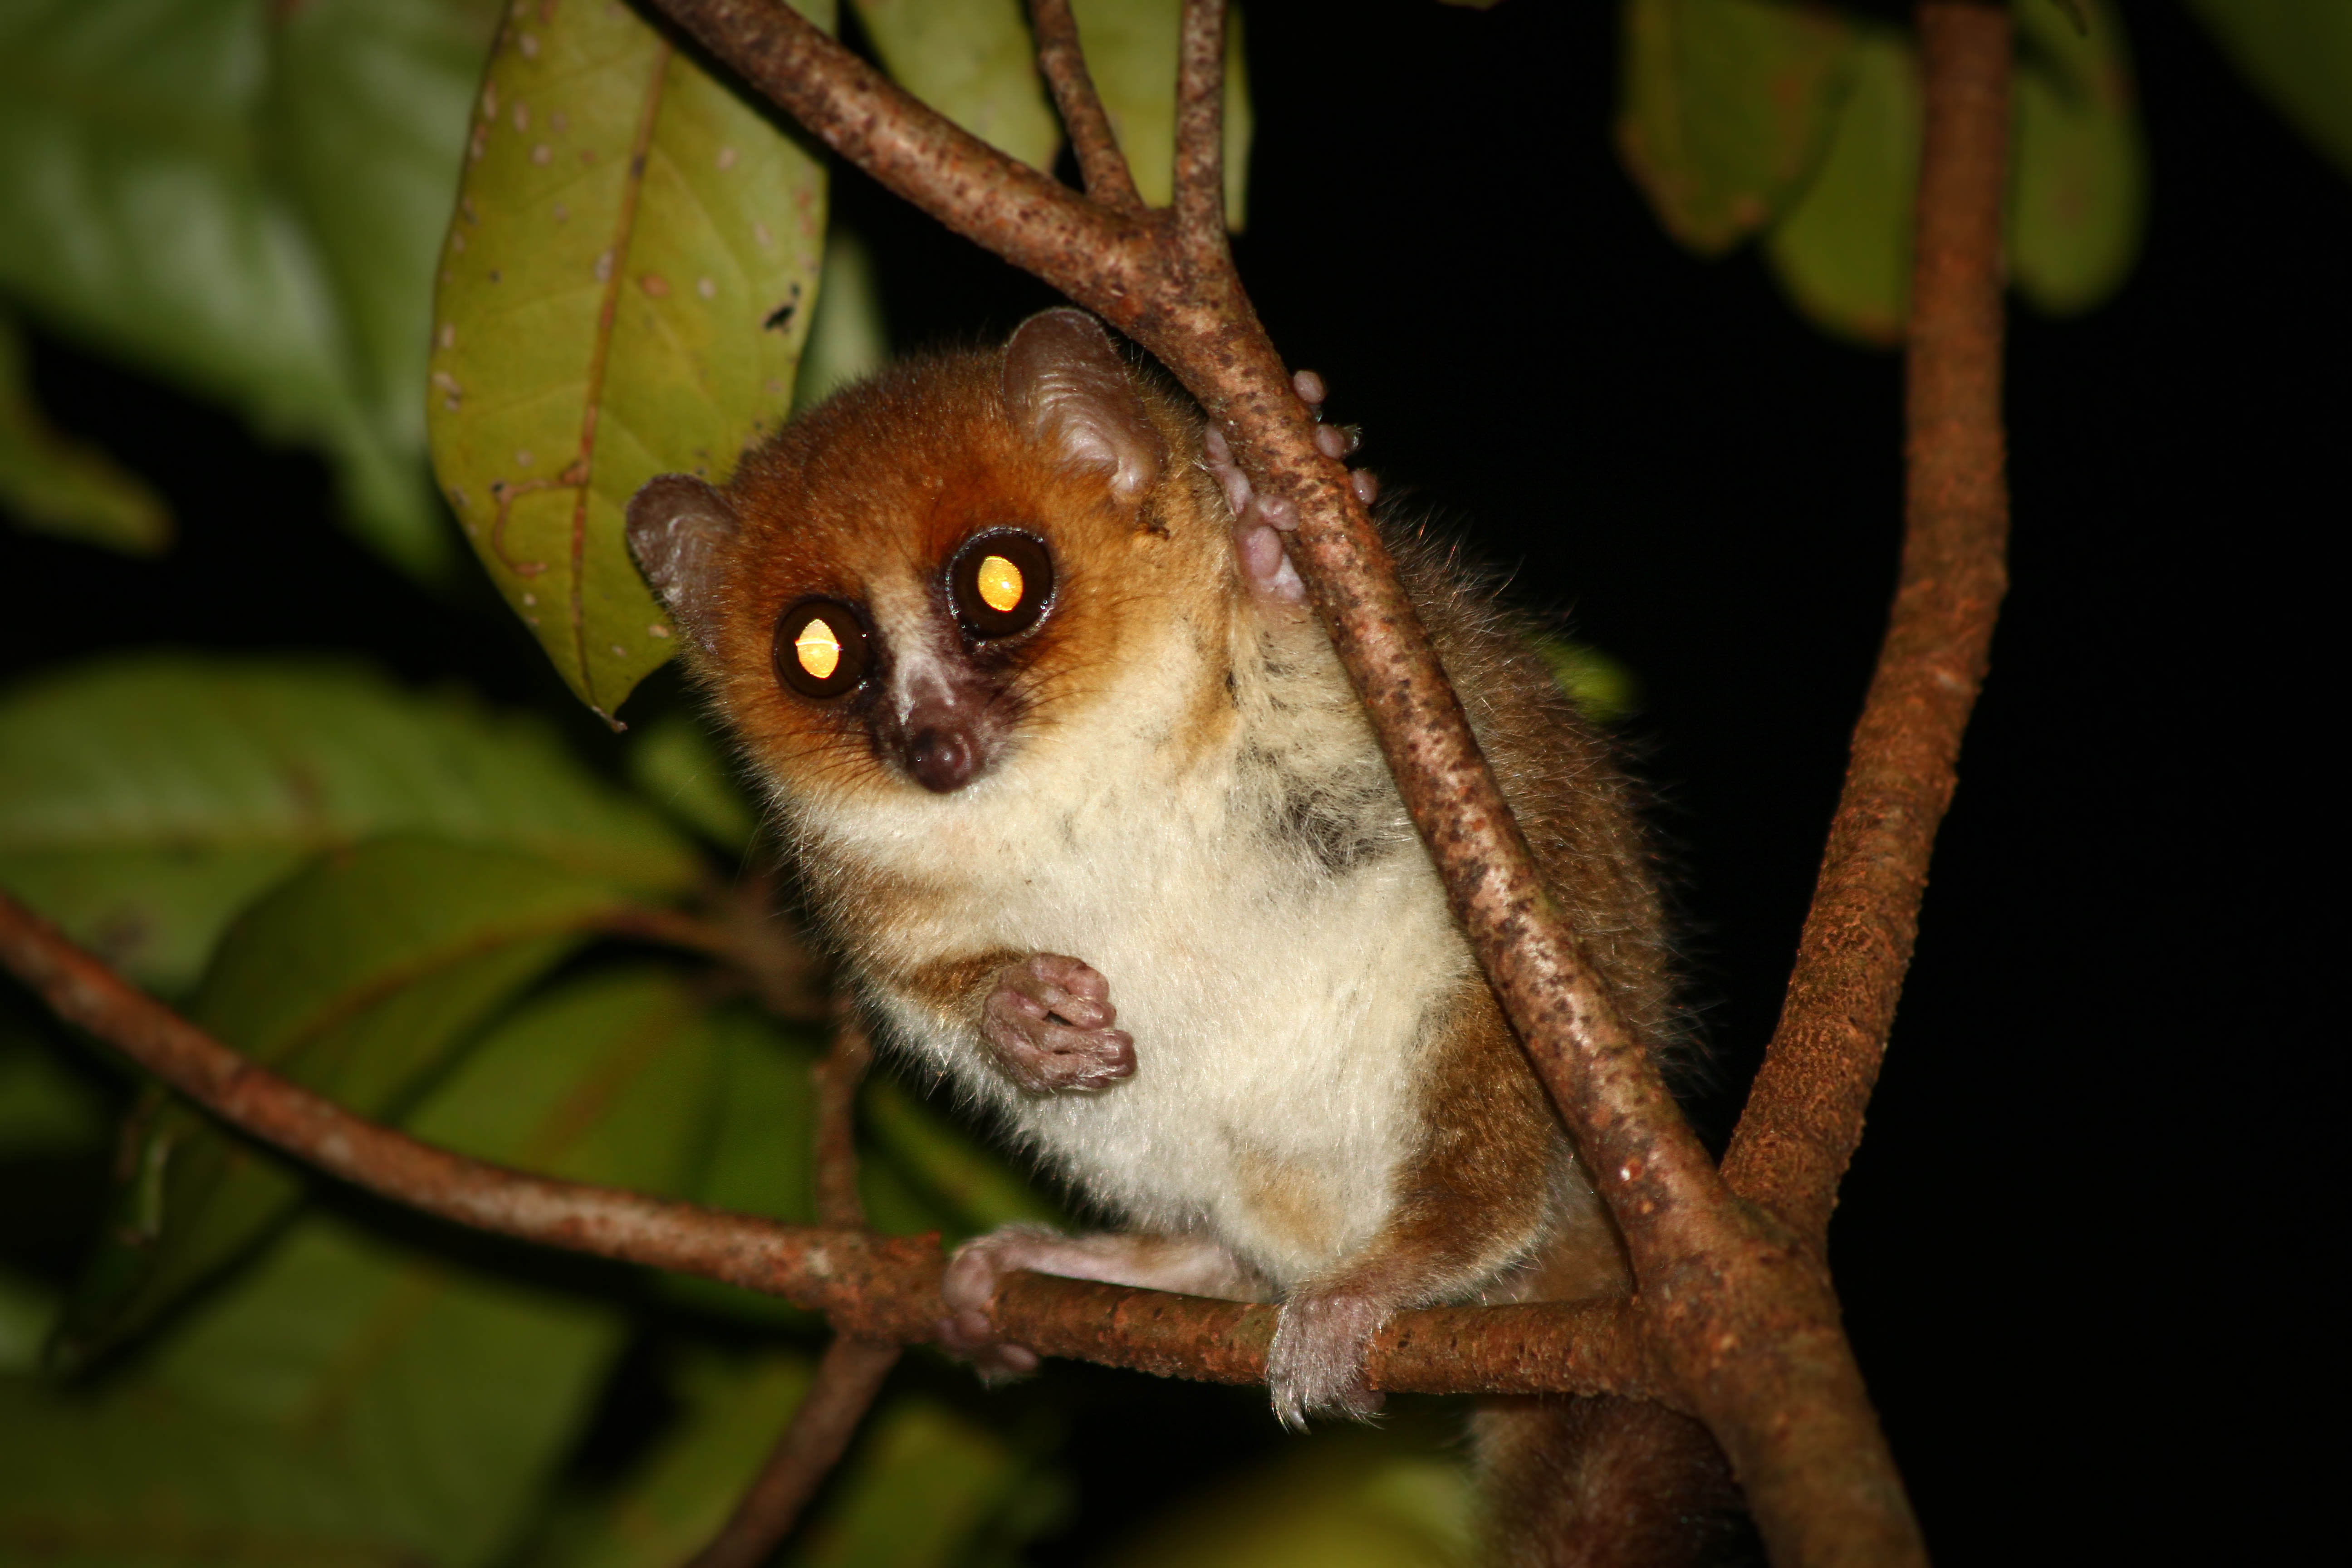 Found only on the island of Madagascar off the coast of Africa, our more distant primate cousin, the lemur lives a bizarre life.